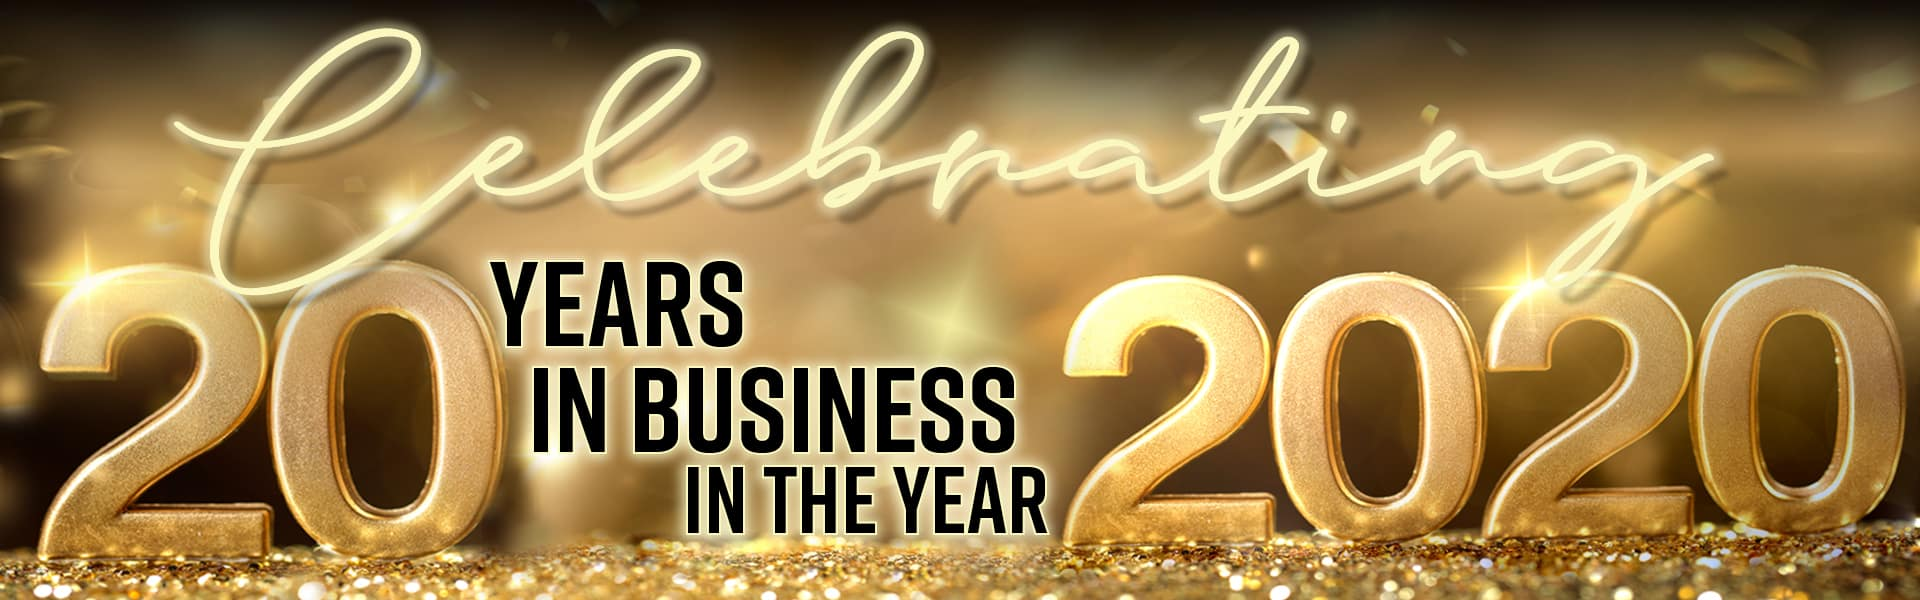 Pinckney Chrysler Dodge Jeep RAM is Proud to be celebrating 20 Years in Business